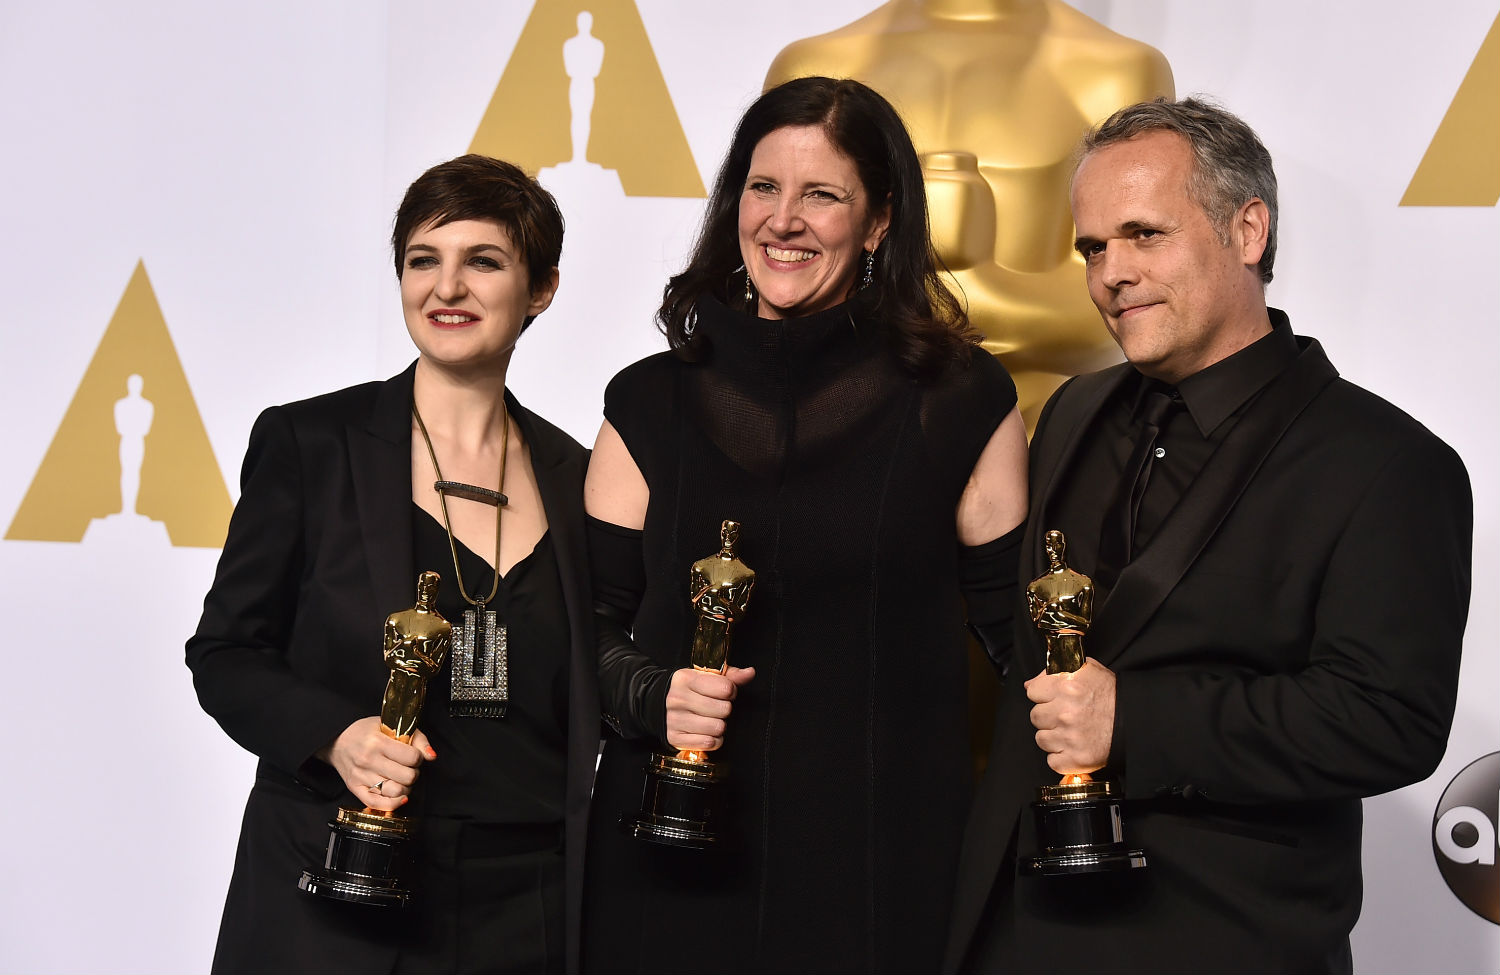 Laura-Poitras-at-the-Oscars-with-Citizenfour-award